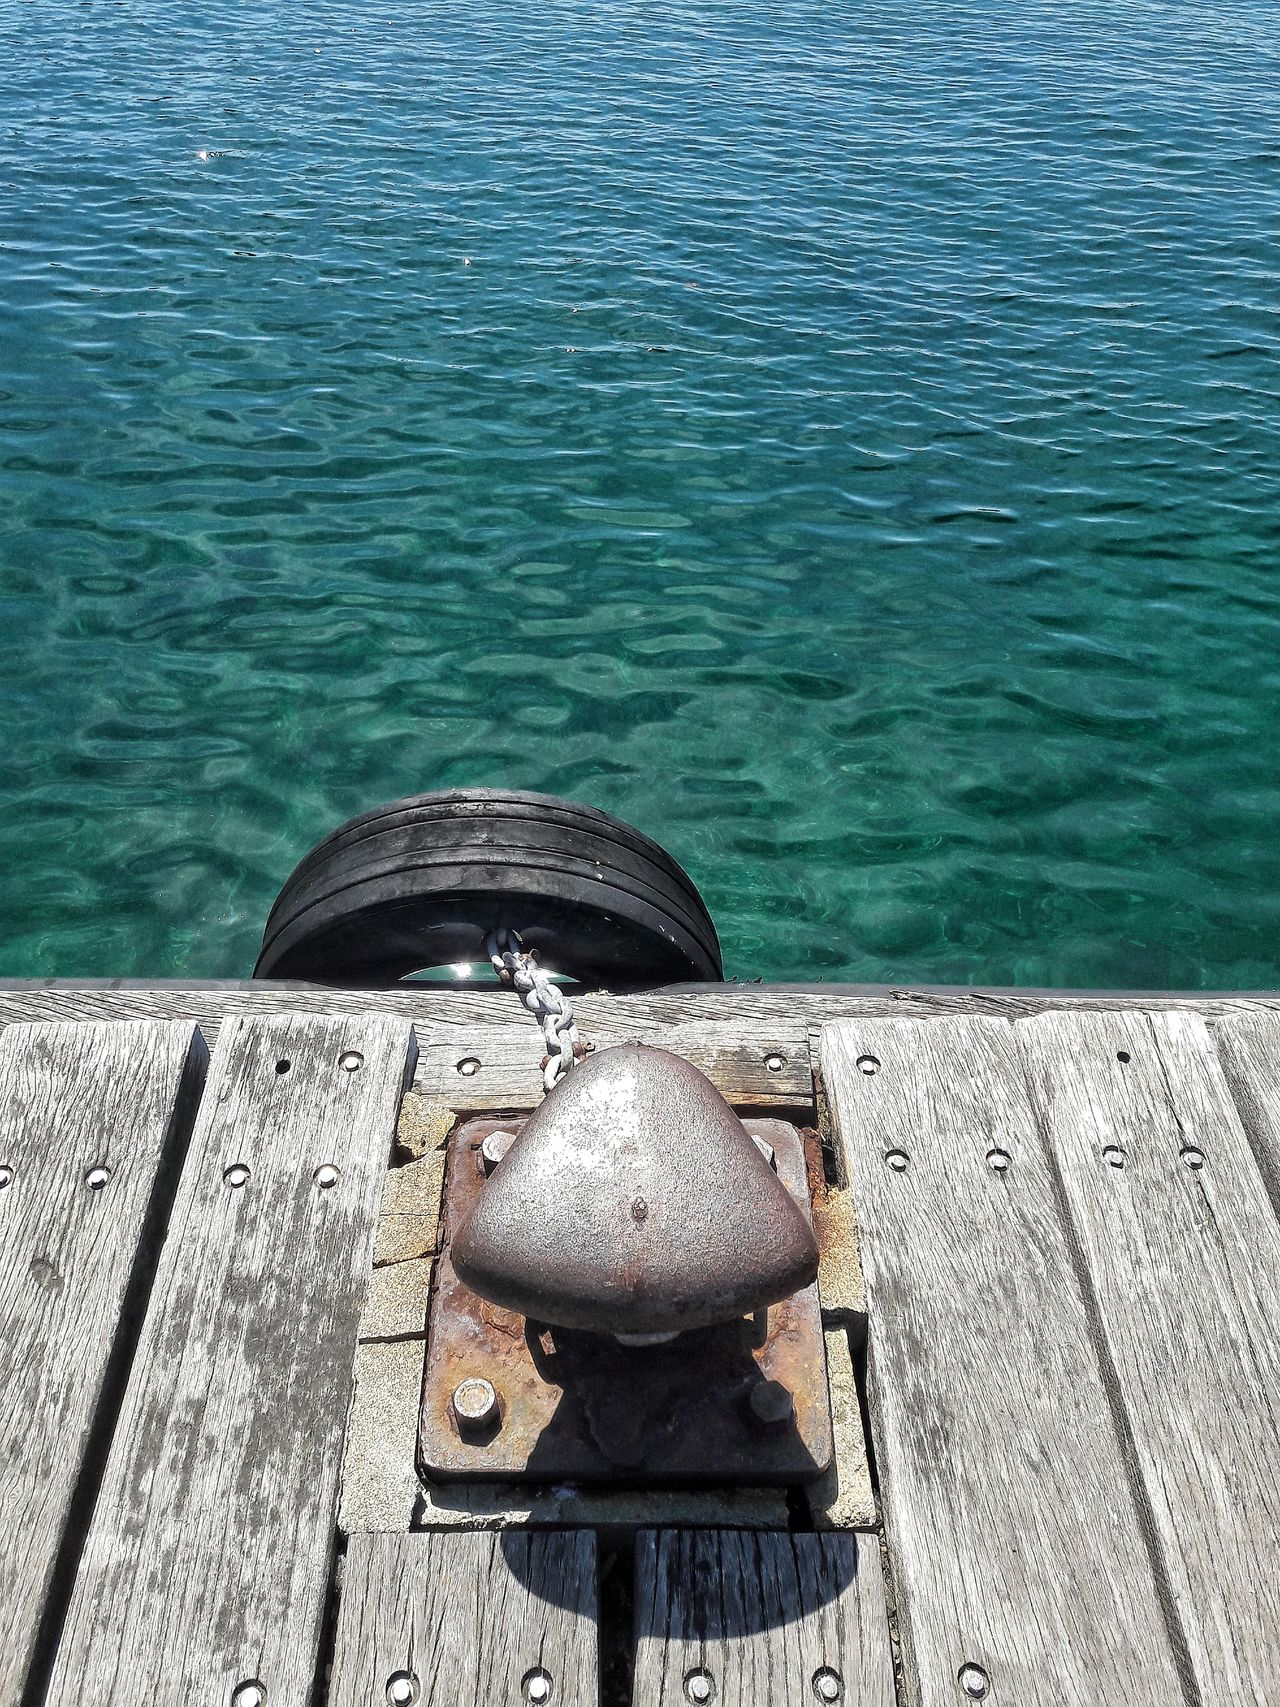 Water High Angle View Day No People Sunlight Outdoors Nature Shadow Tranquility Sea Beauty In Nature Pier Sailing Holiday Tyre Vacation Departure Leaving Wood Bollard Mooring